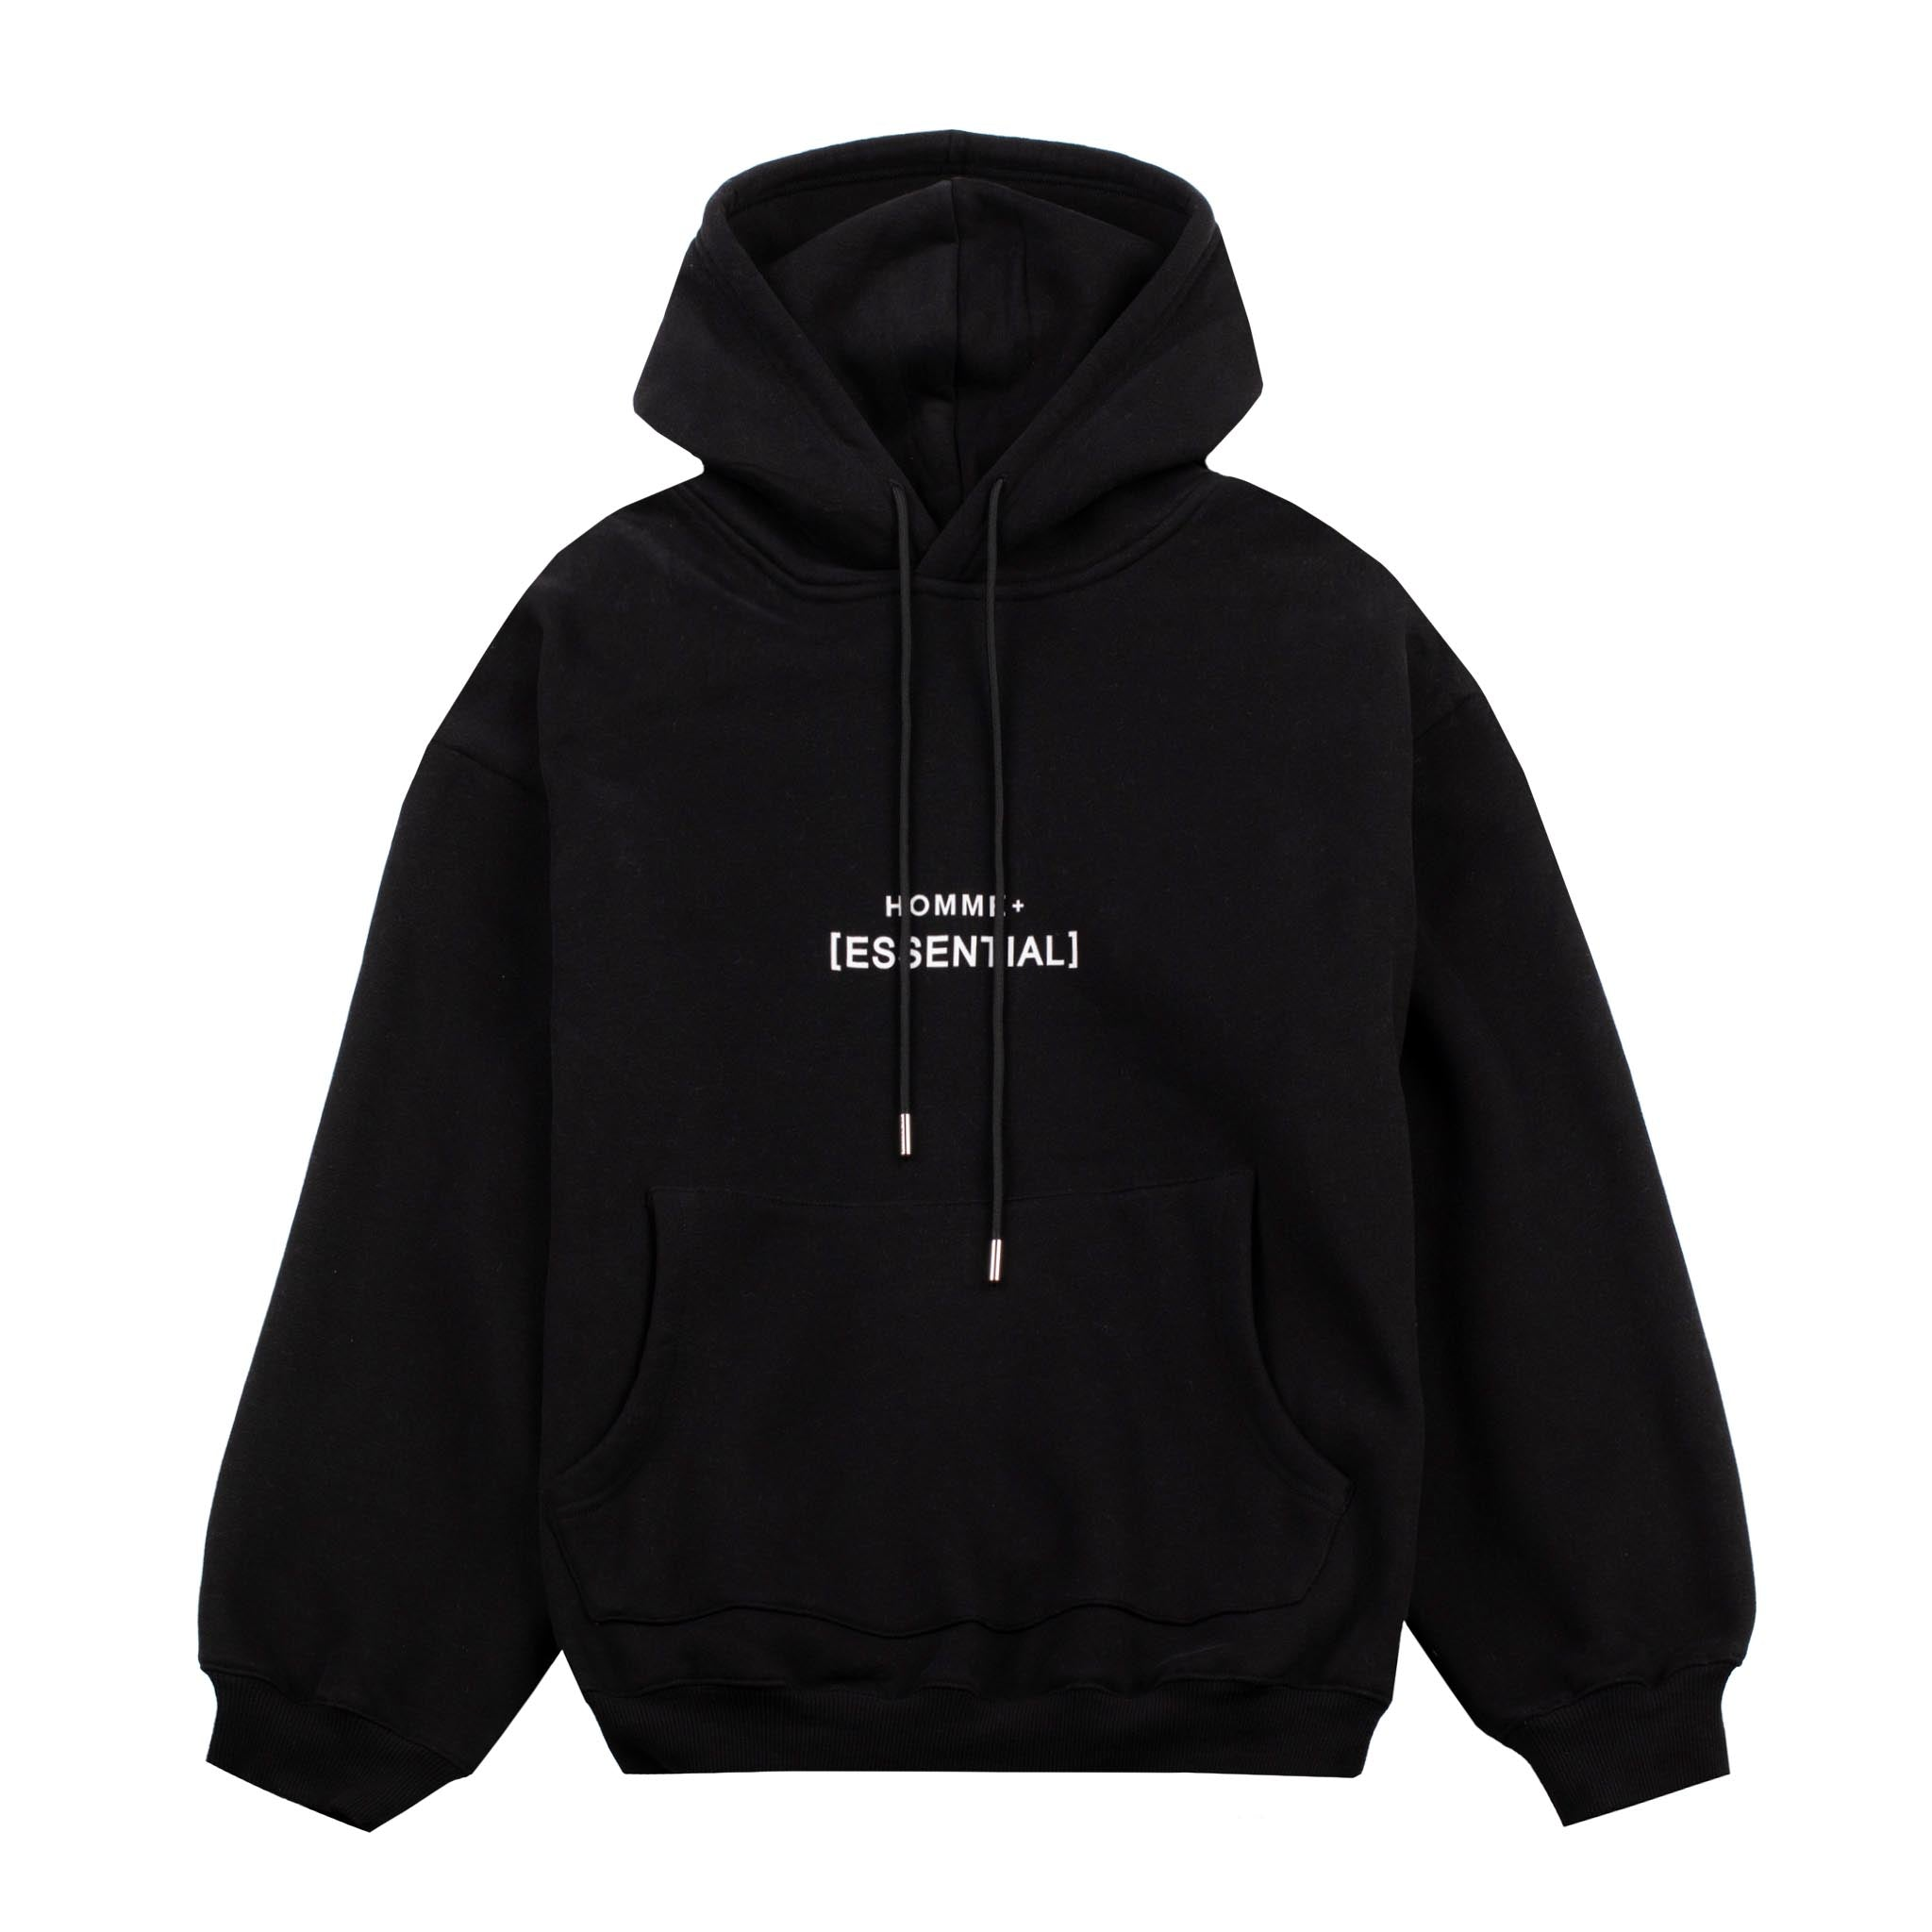 HOMME+ 'ESSENTIAL' Heavyweight Hoodie Black